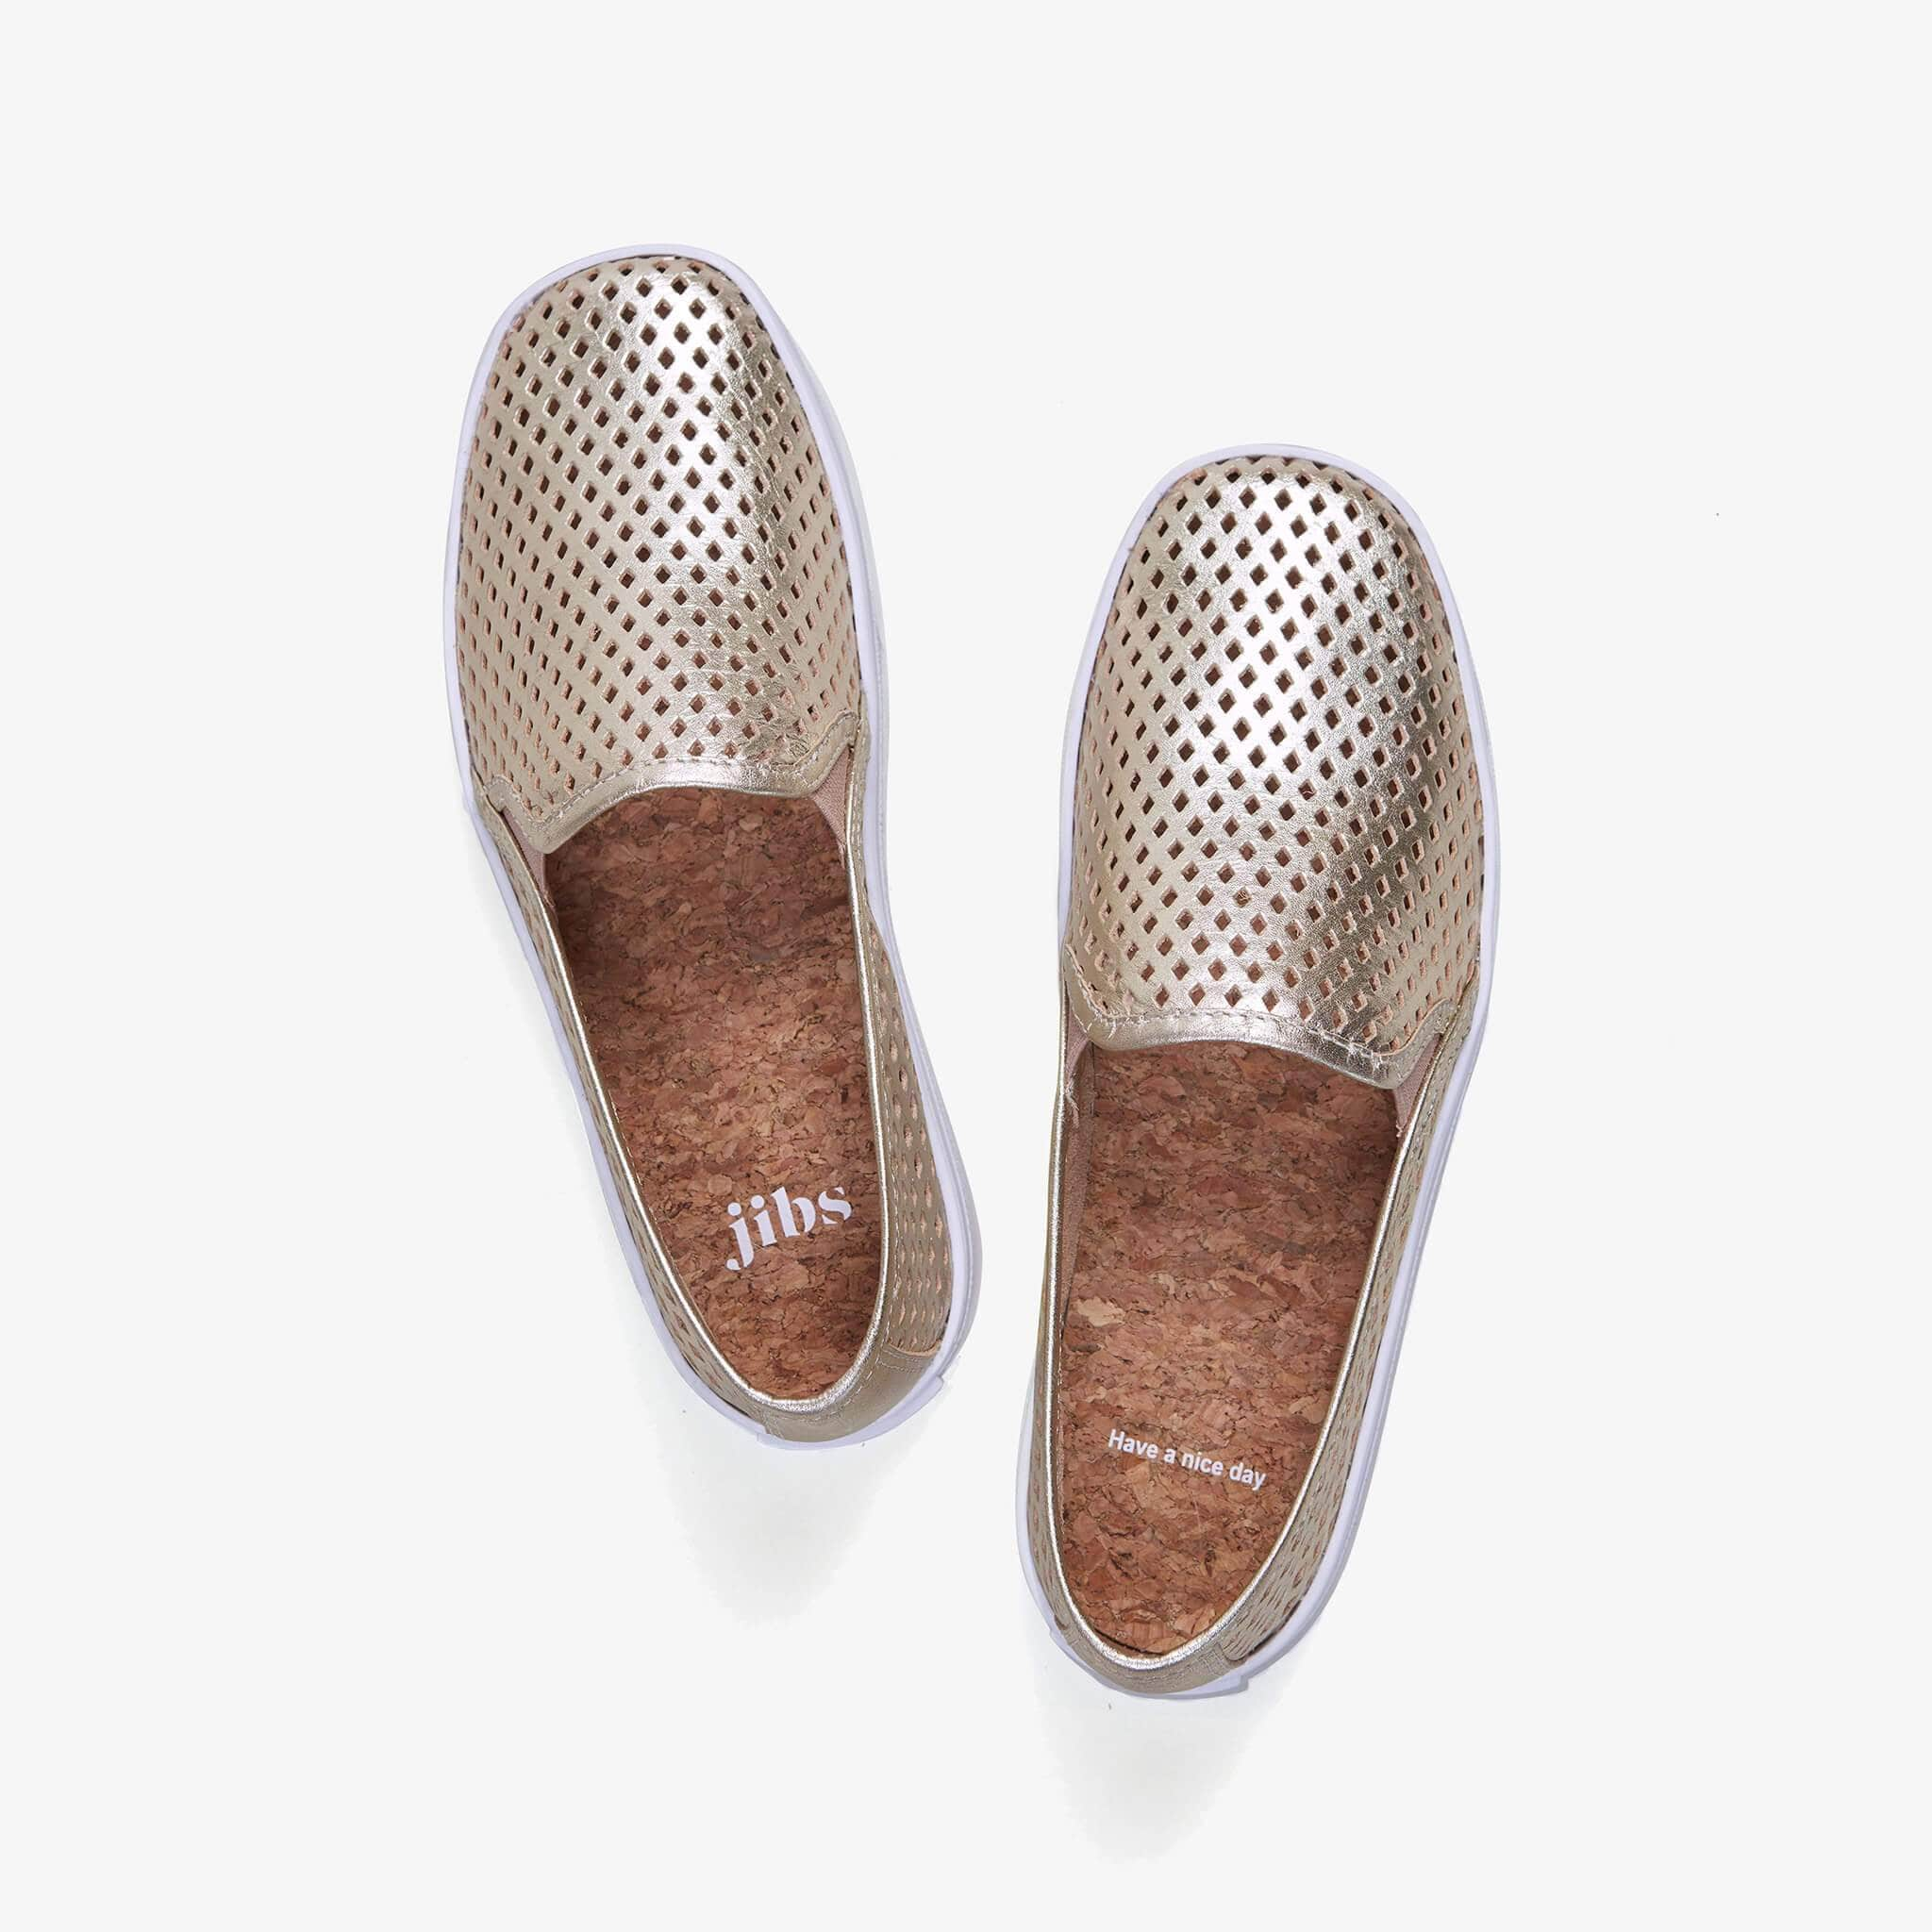 Jibs Classic Gold Slip On Sneaker-Shoe Have A Nice Day Cork In-sole